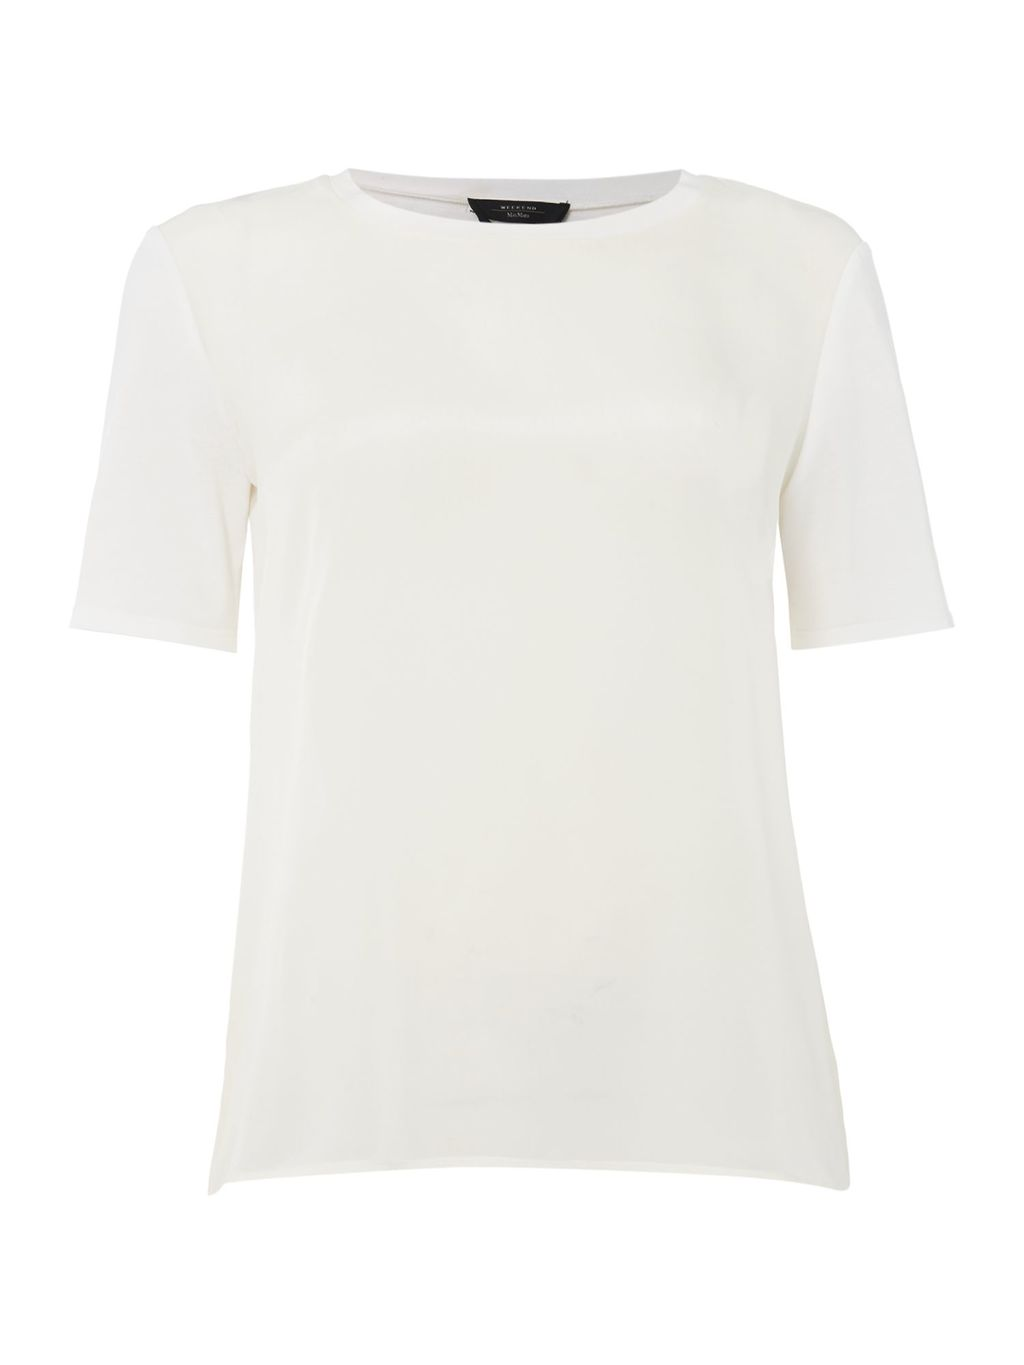 Aggravi Short Sleeve Top, White - pattern: plain; style: t-shirt; predominant colour: white; occasions: casual; length: standard; fibres: viscose/rayon - stretch; fit: body skimming; neckline: crew; sleeve length: short sleeve; sleeve style: standard; pattern type: fabric; texture group: jersey - stretchy/drapey; season: s/s 2016; wardrobe: basic